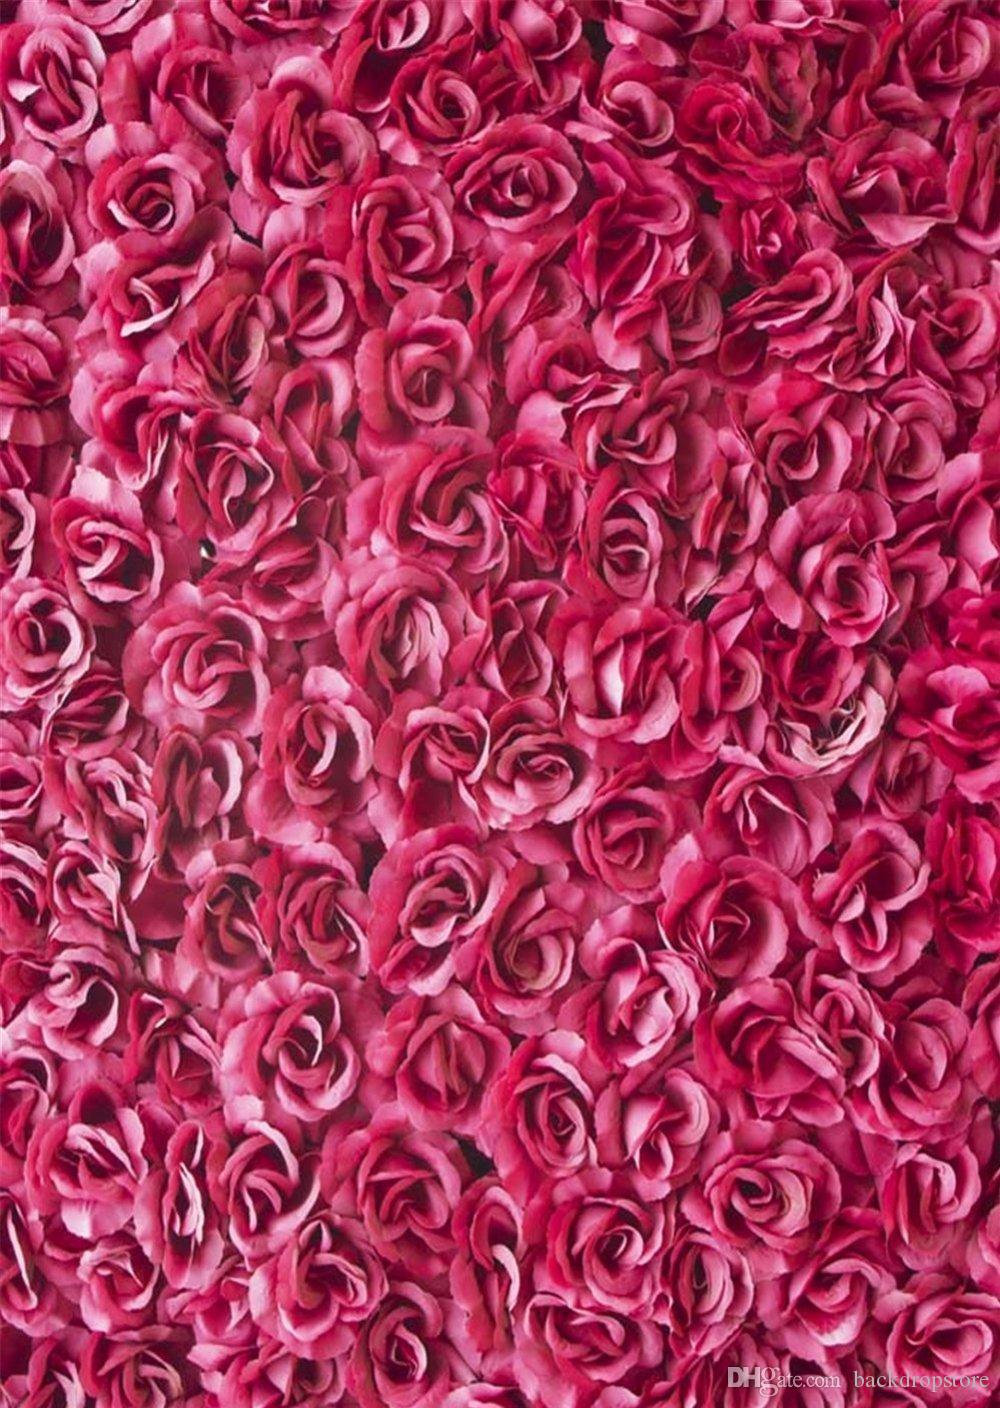 2018 Pink Flowers Wall Backdrop Photography 3d Roses Digital Printed